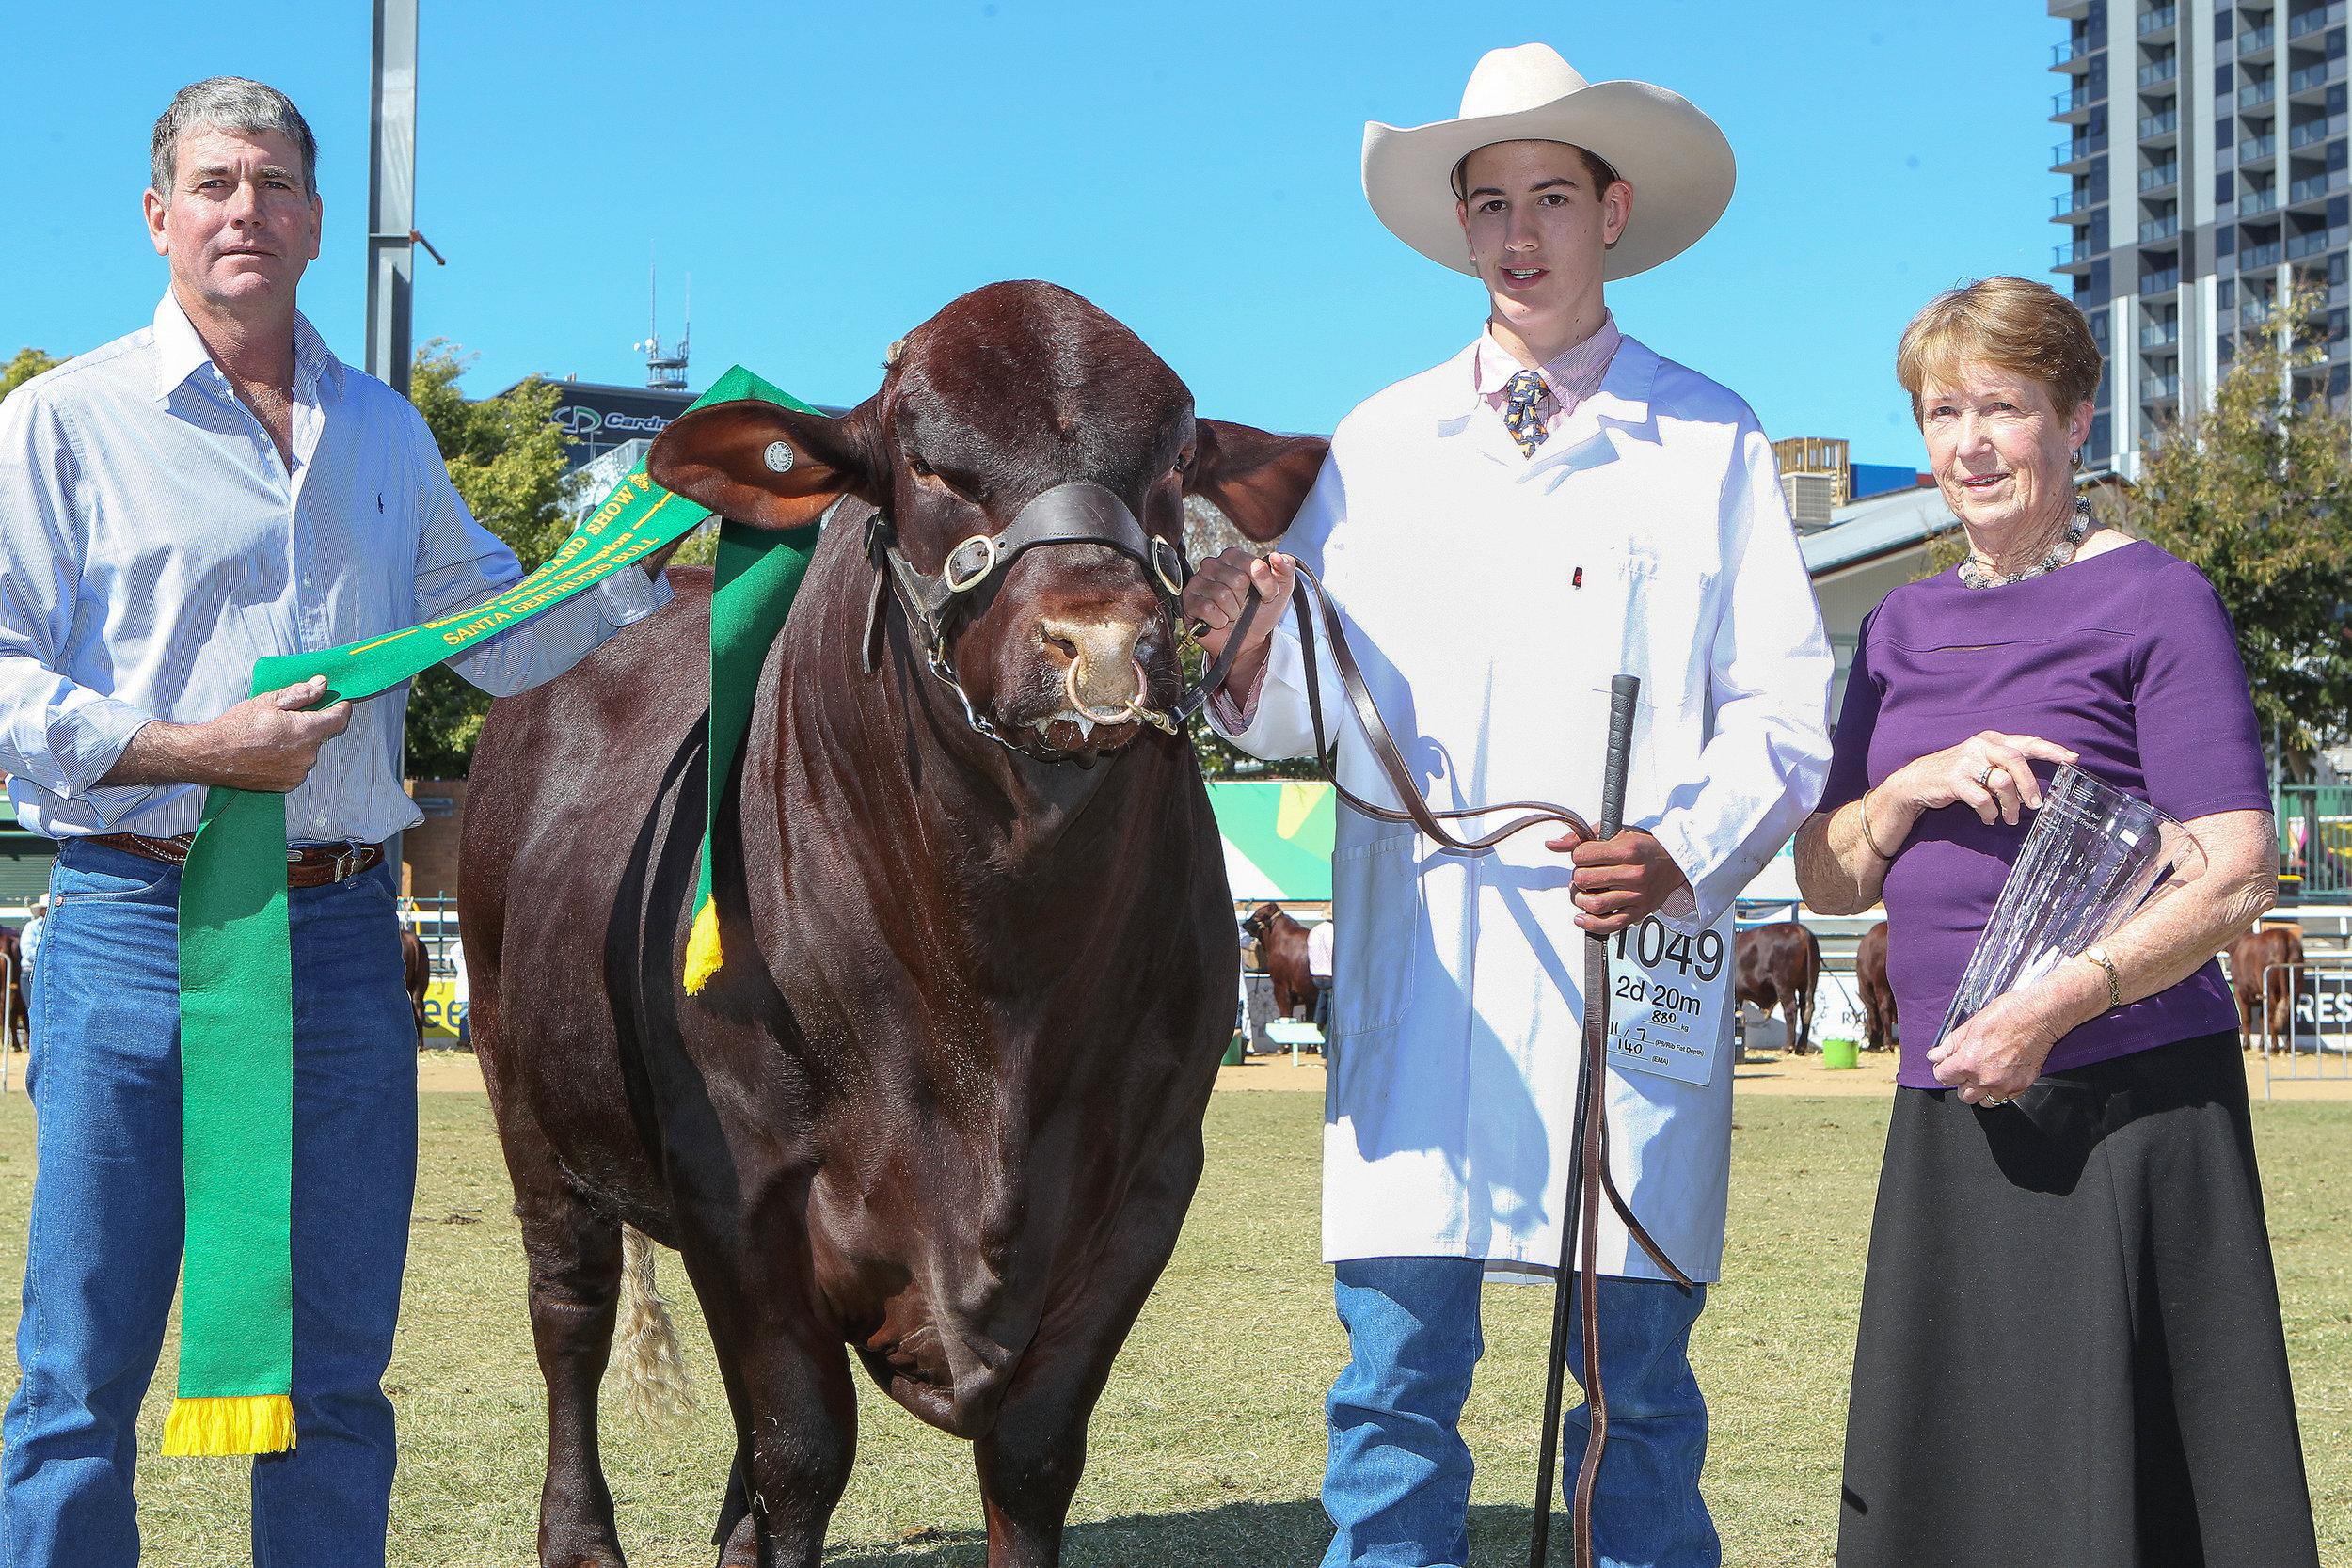 Waco Mustang M170 (P)- Reserve Junior Champion Bull awarded the Graeme Ferguson Memorial Trophy sponsored by Heartland SG Breeders Group. Ribbon presented by Malcolm Gatsby, Trophy presented by Mrs Margaret Ferguson, bull led by Howy Bassingthwaighte.